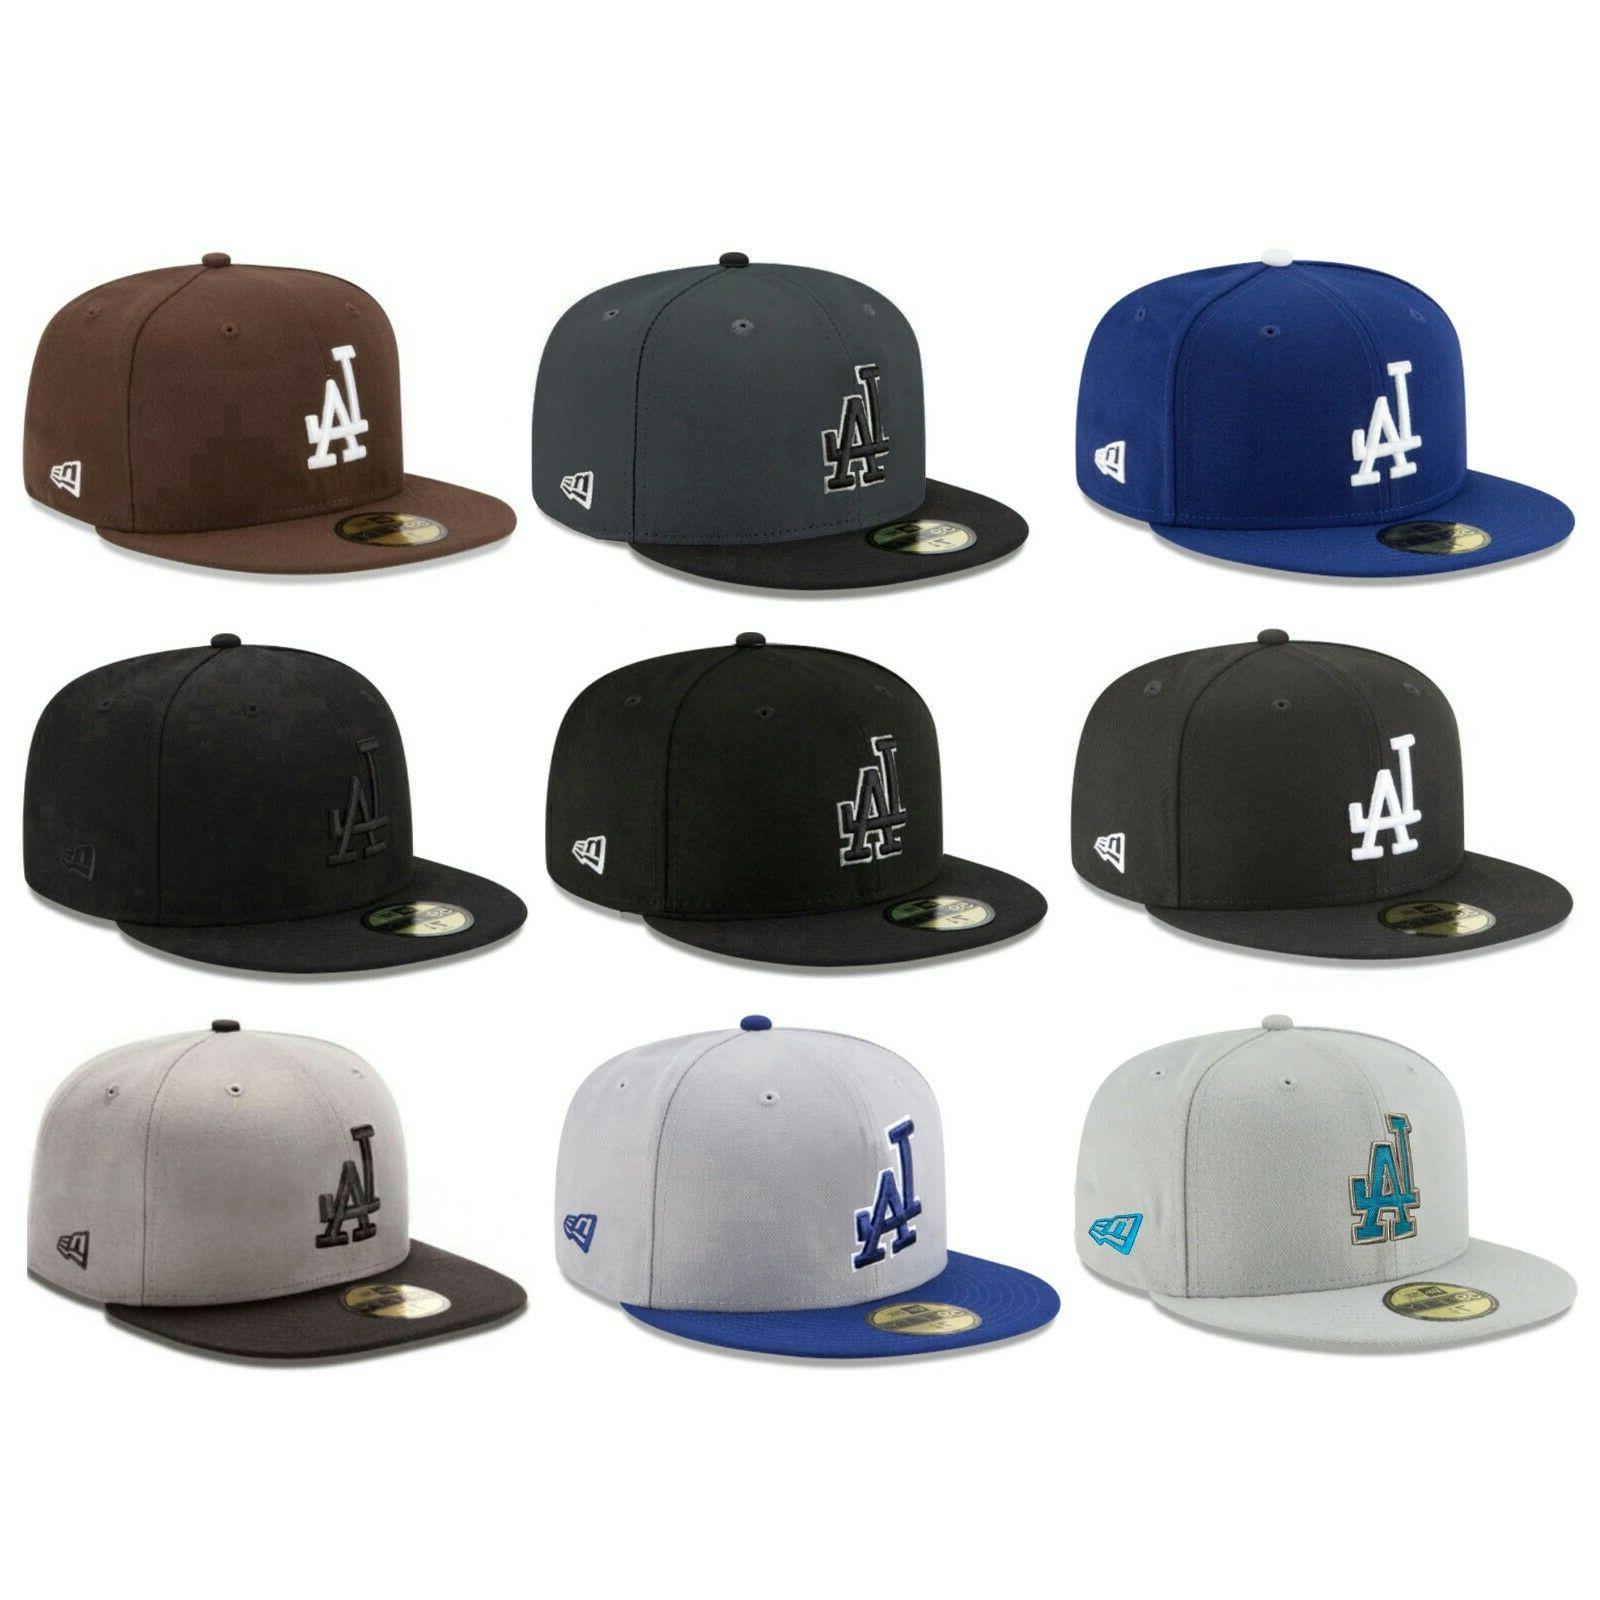 los angeles dodgers lad mlb authentic 59fifty